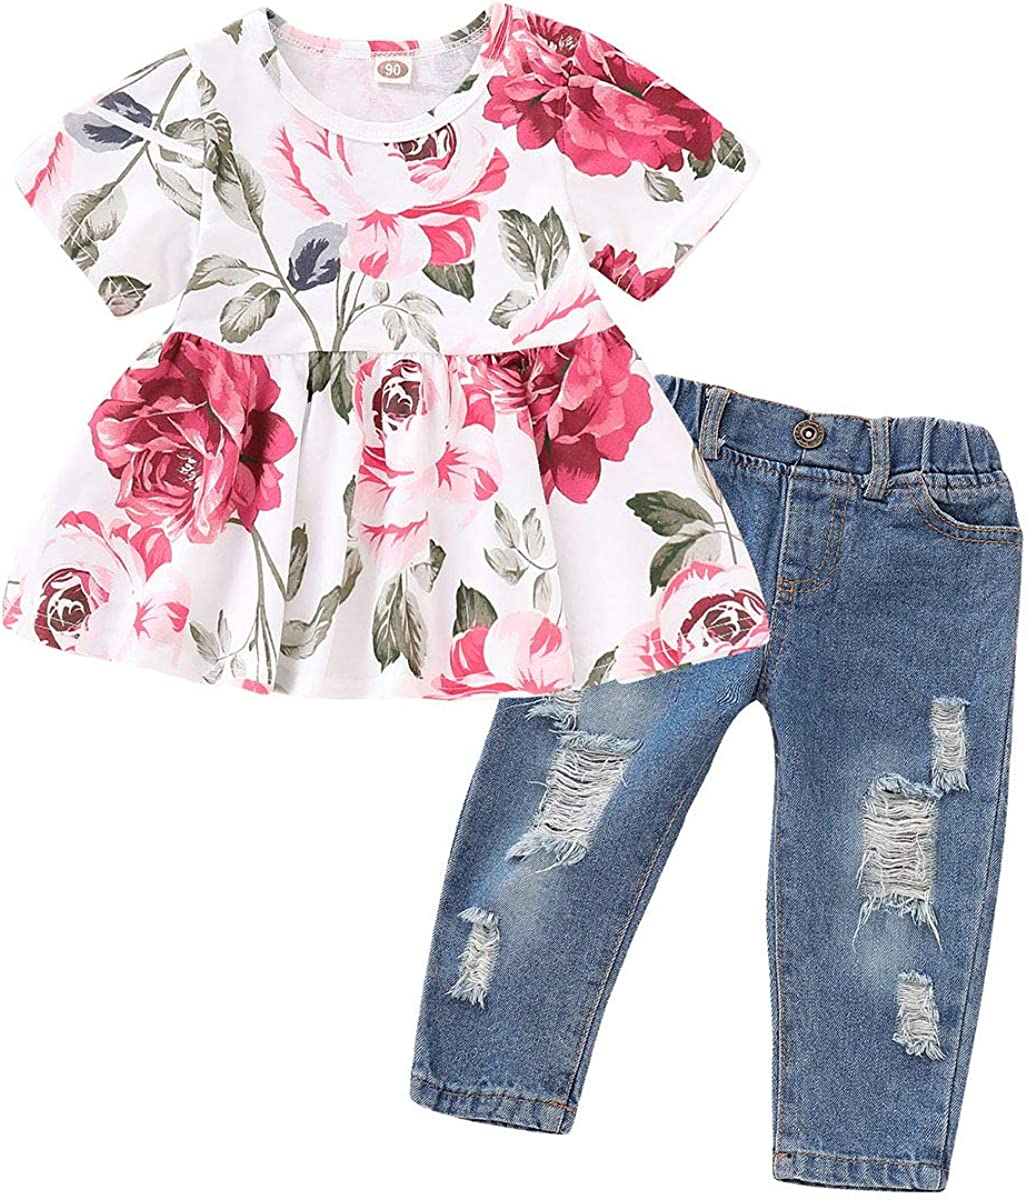 Toddler Baby Girls Clothes Floral Ruffle T-Shirt+ Ripped Jeans Denim Pants Outfits Sets